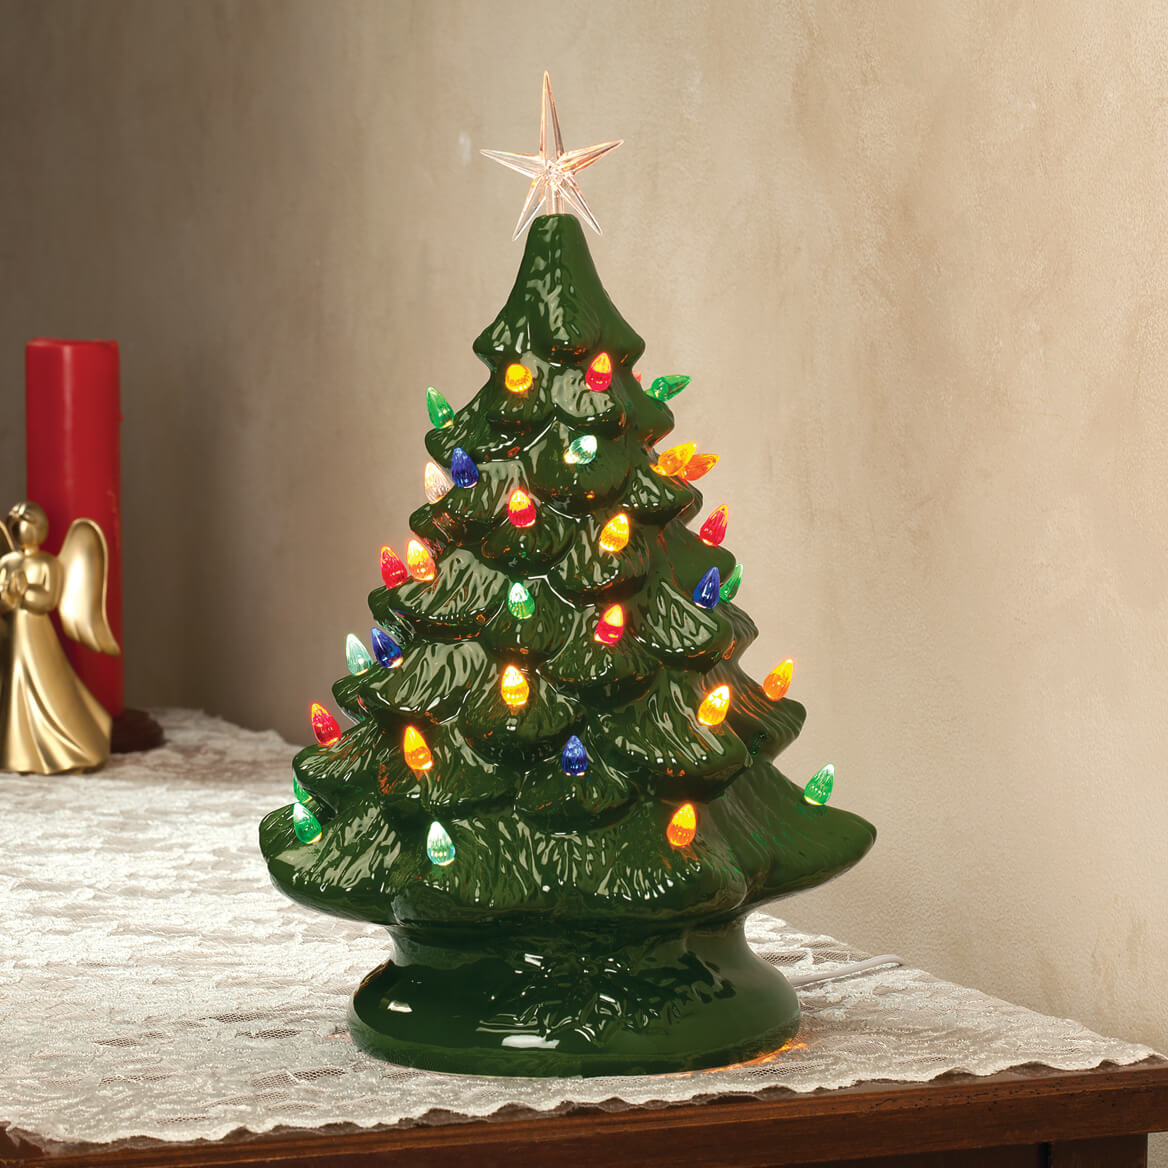 Ceramic Christmas Tree With Lights.Details About Grandmas Retro Nostalgic Ceramic Green Glaze Lighted Table Top Christmas Tree